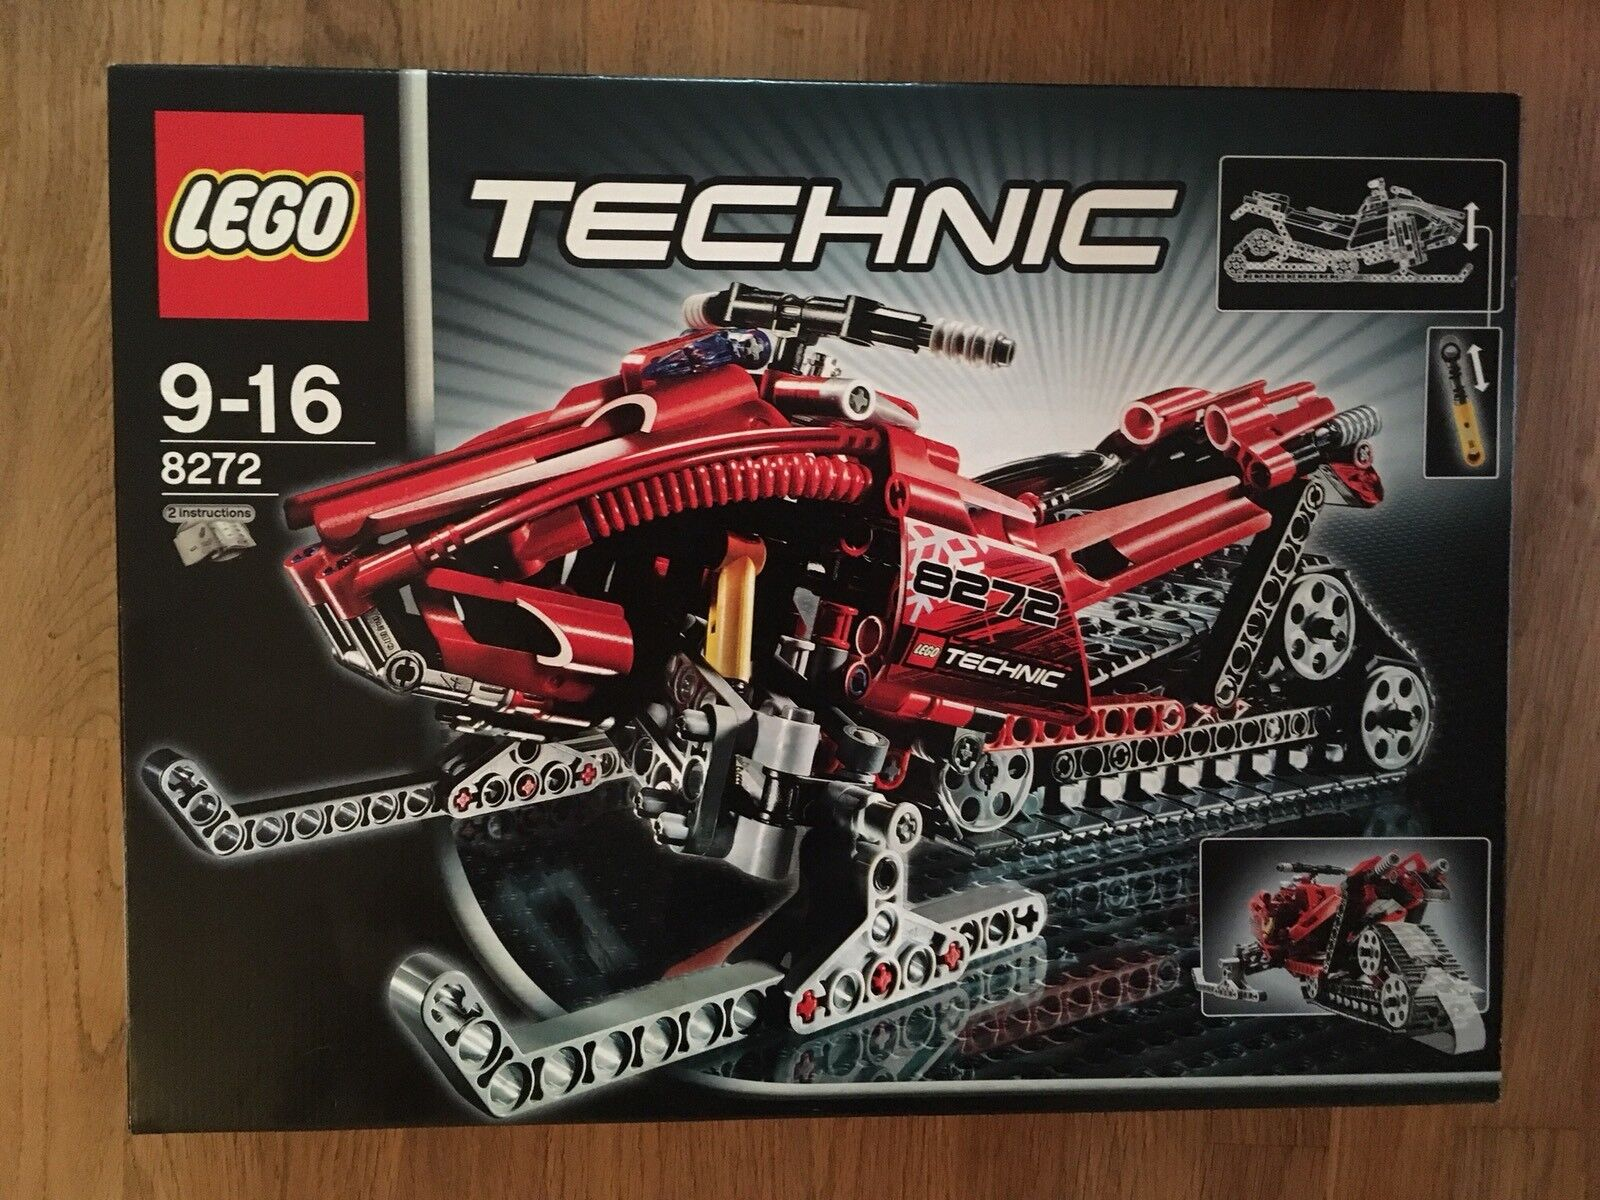 LEGO Technic Technology 8272 neve Mobile Nuovo/Scatola Originale MISB/NEW